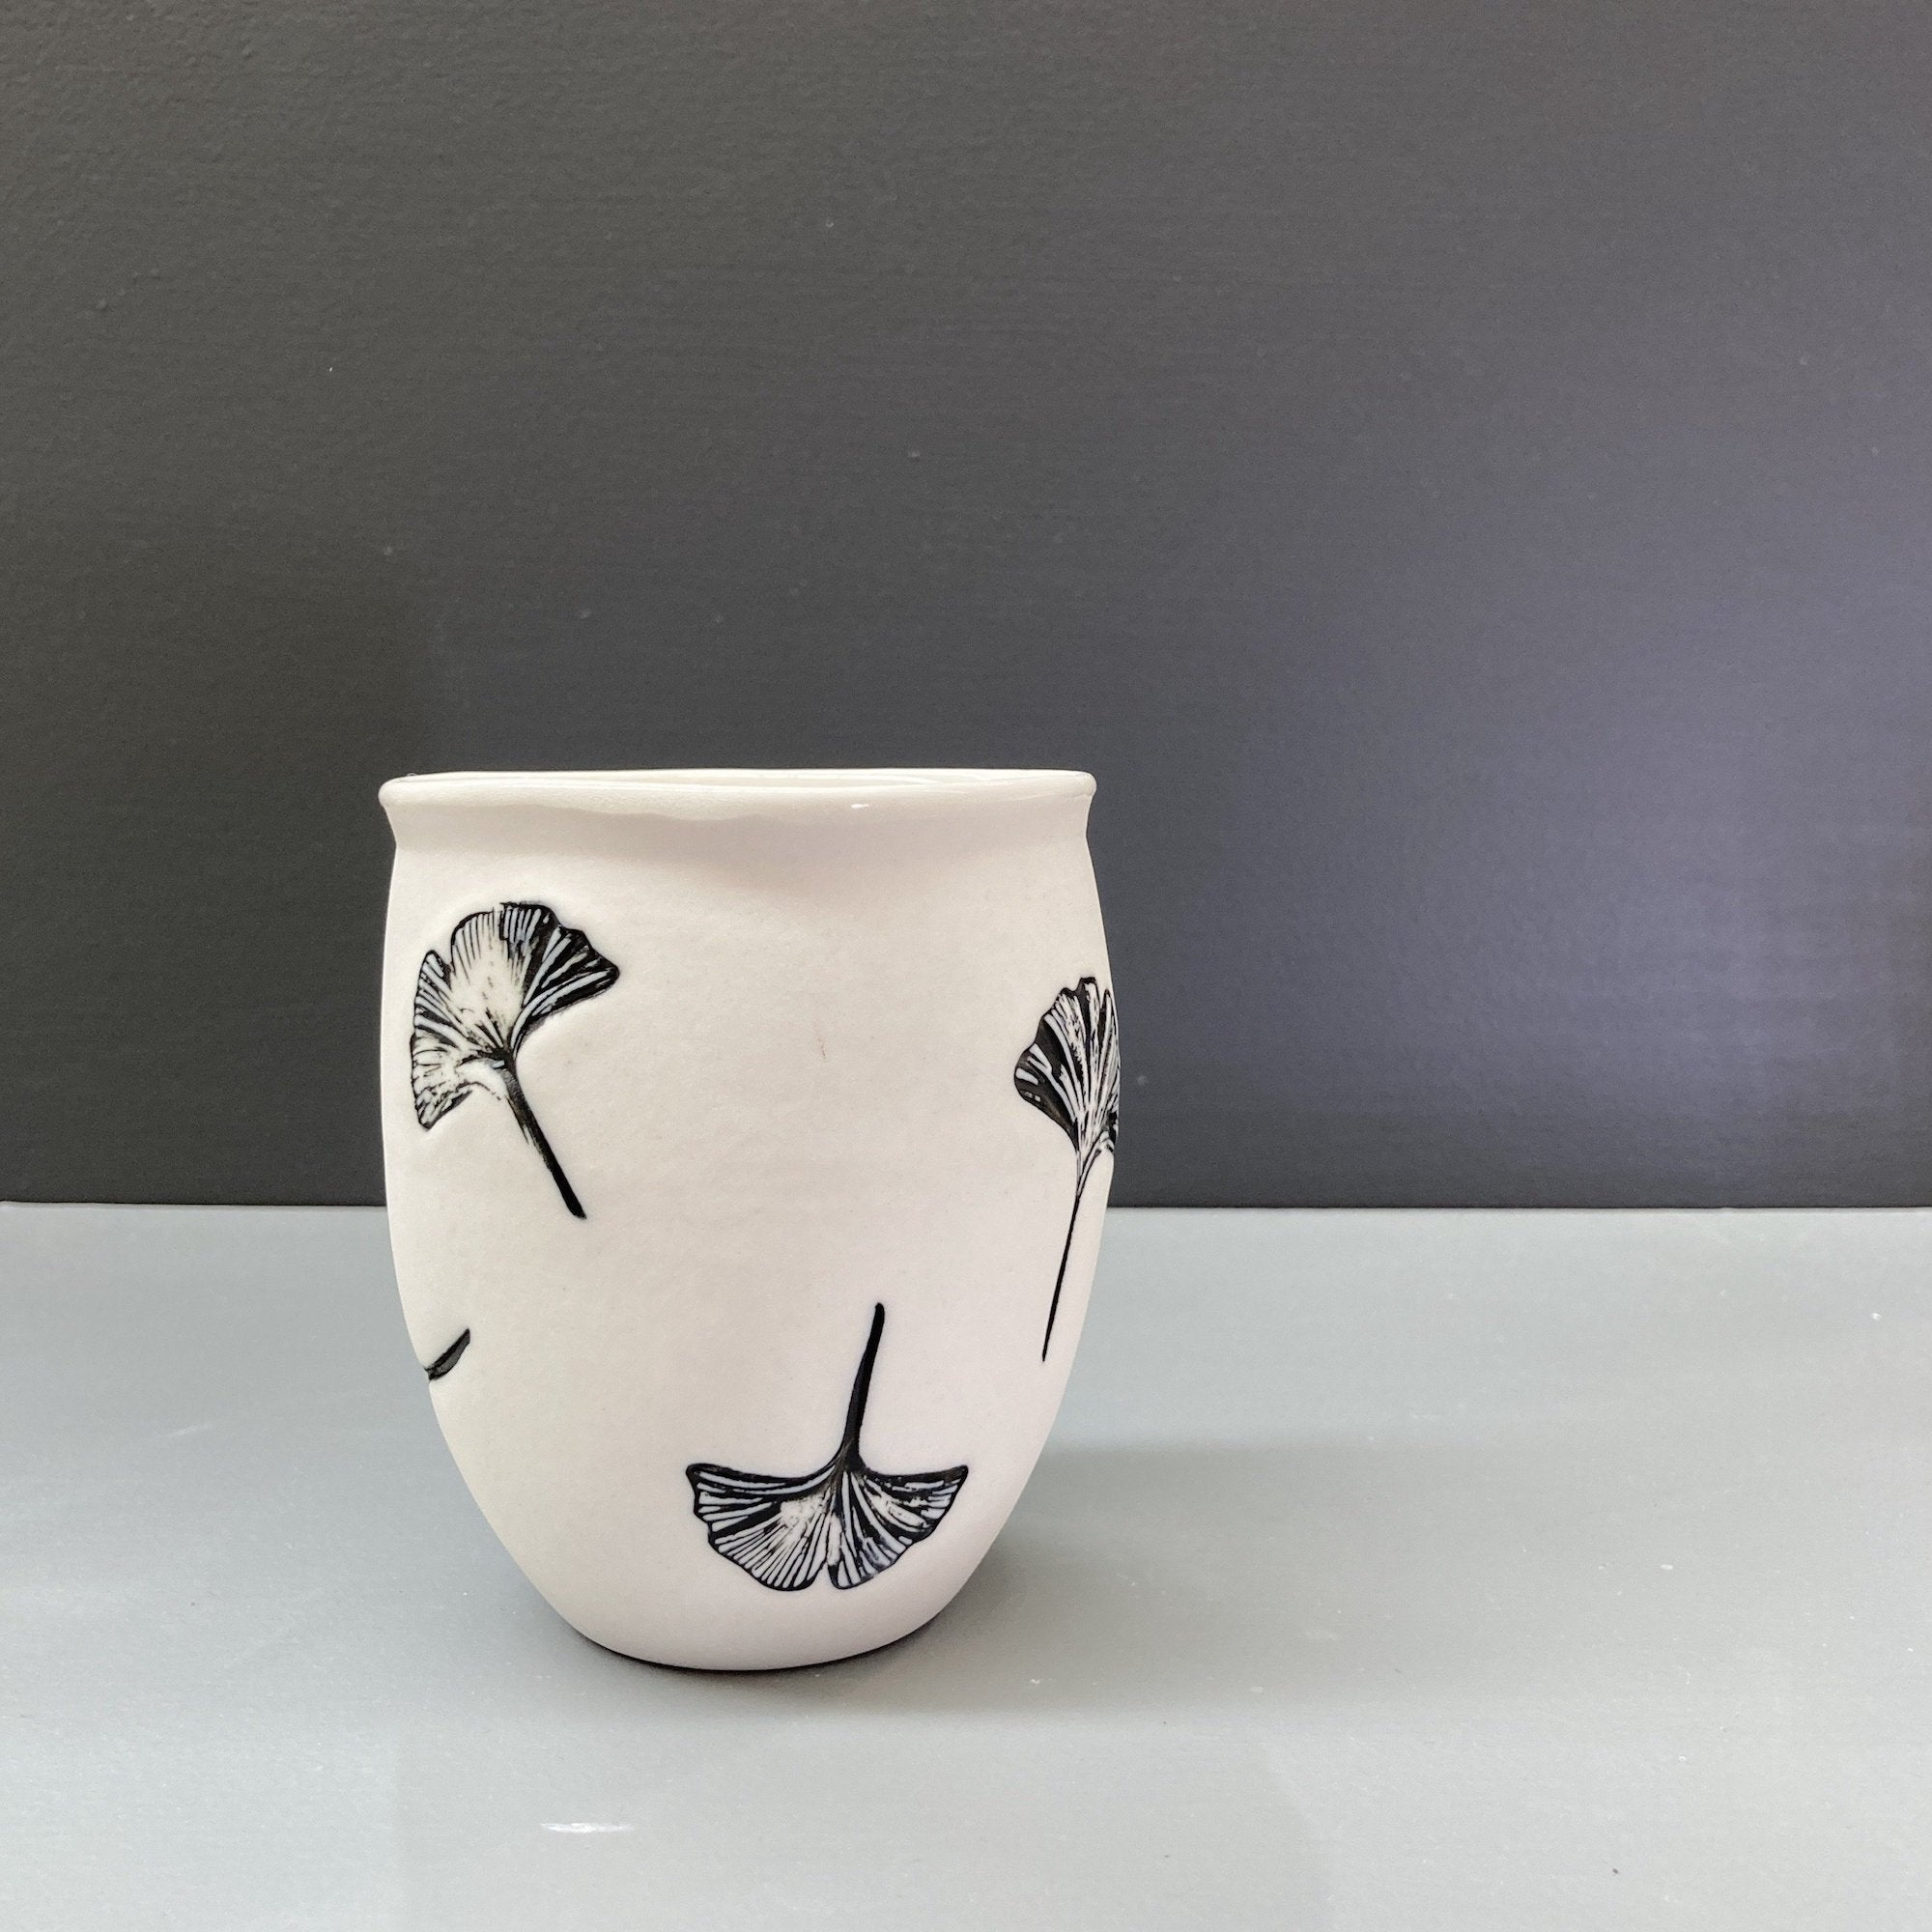 A hand made white ceramic keep cup. Stamped with a black ginkgo leaf print. The cup has an unglazed  matte finish. A design collaboration between Hayden Youlley and Feloffa